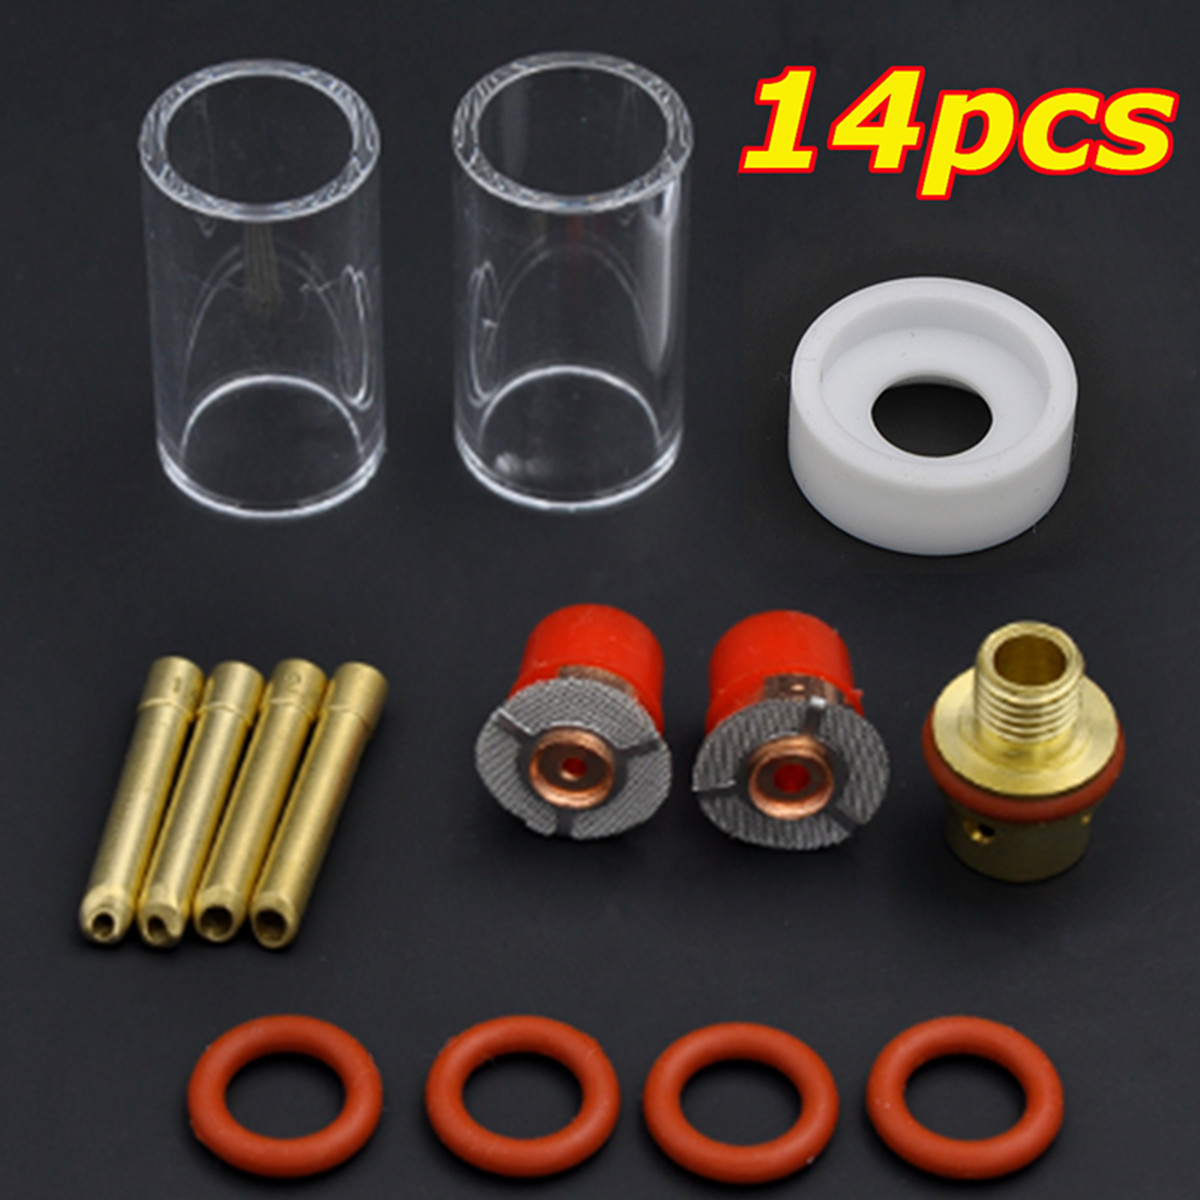 14PCS TIG Welding Torch Stubby Gas Lens Glass Cup Kit For WP9/20/25.Series